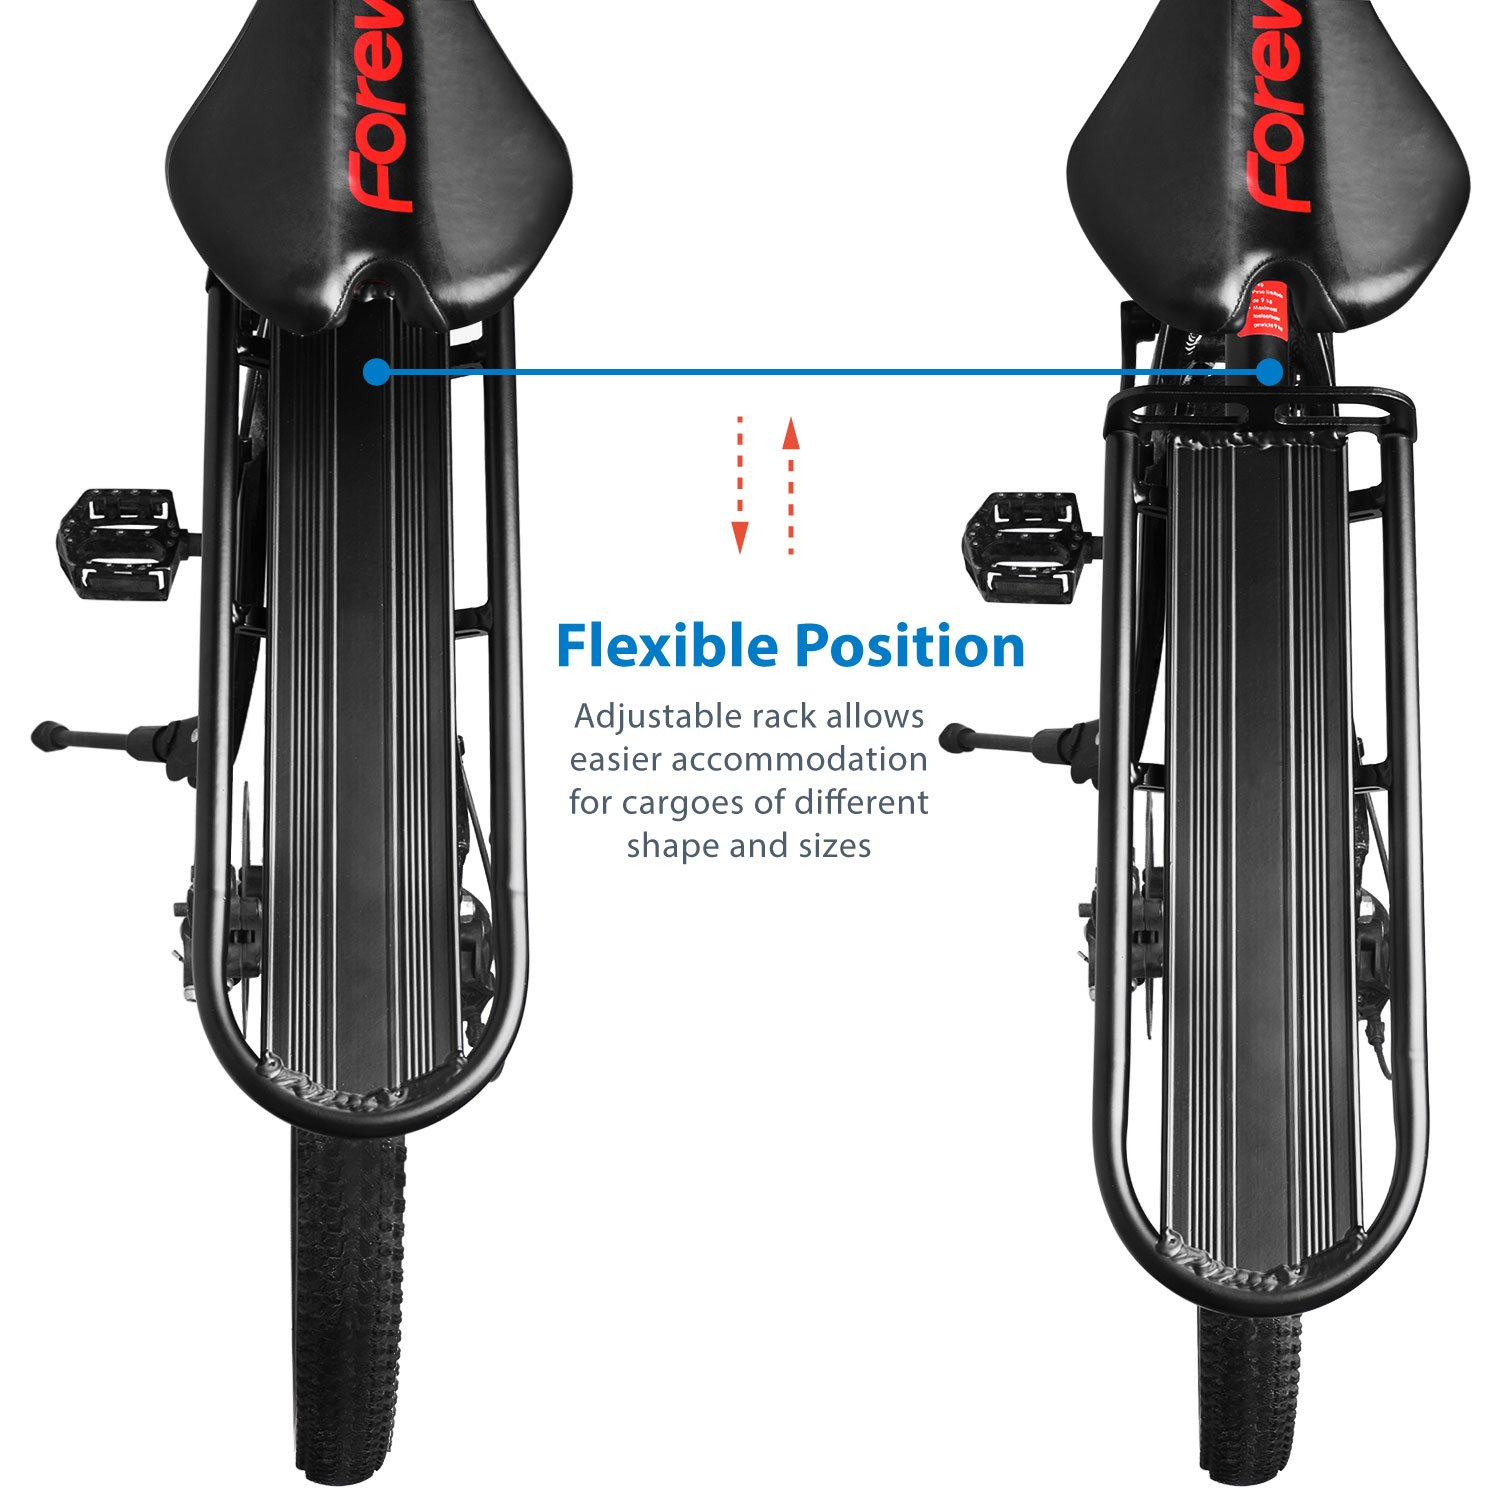 Flexzion Adjustable Bike Cargo Rack, Universal Extendable Aluminum Seat Post Rear Carrier Bicycle Touring Mount for Heavy Luggage Saddle Equipment Gear, Black by Flexzion (Image #5)